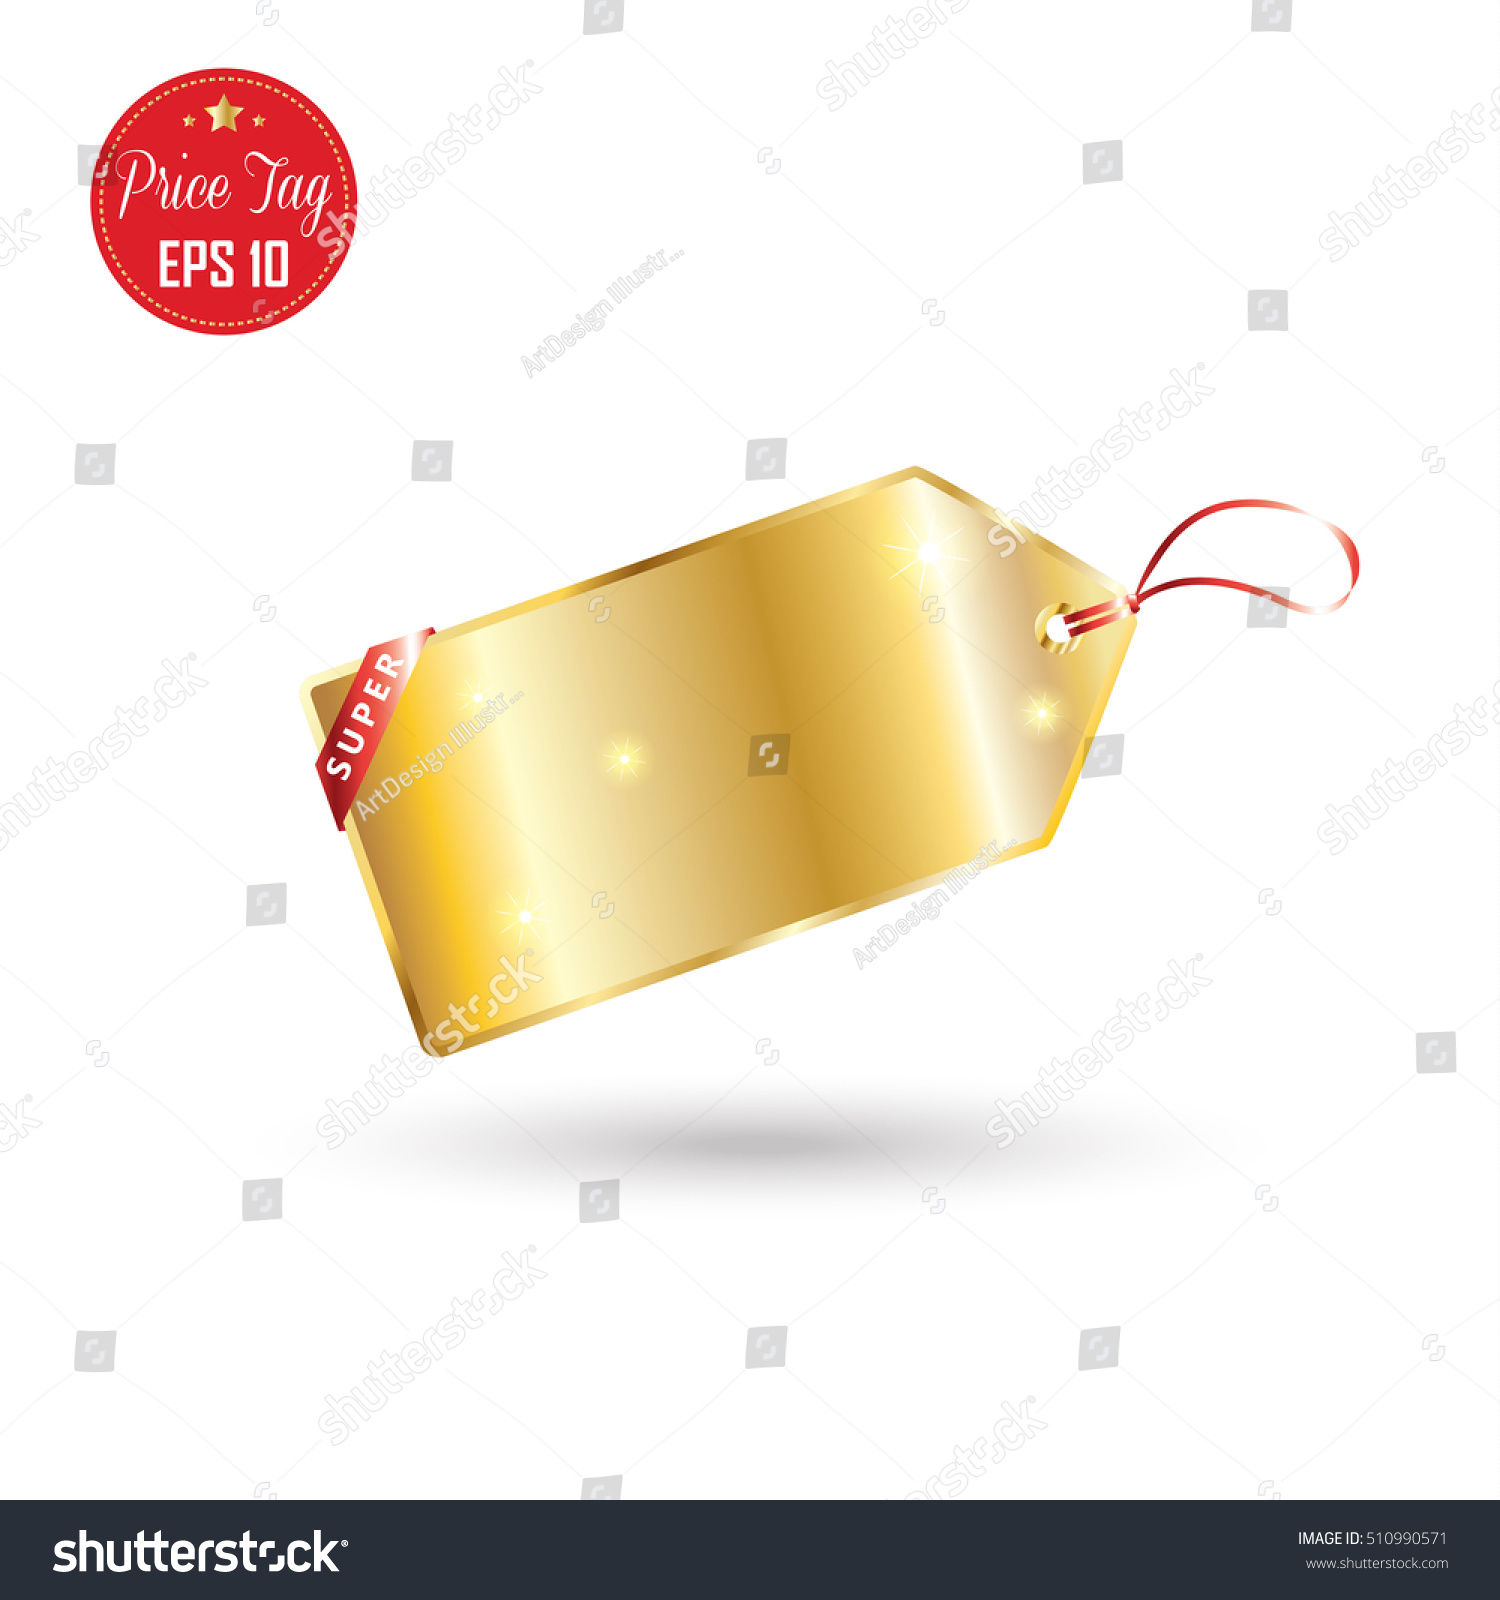 Price Tag Price Tags Label Gold Stock Vector Royalty Free